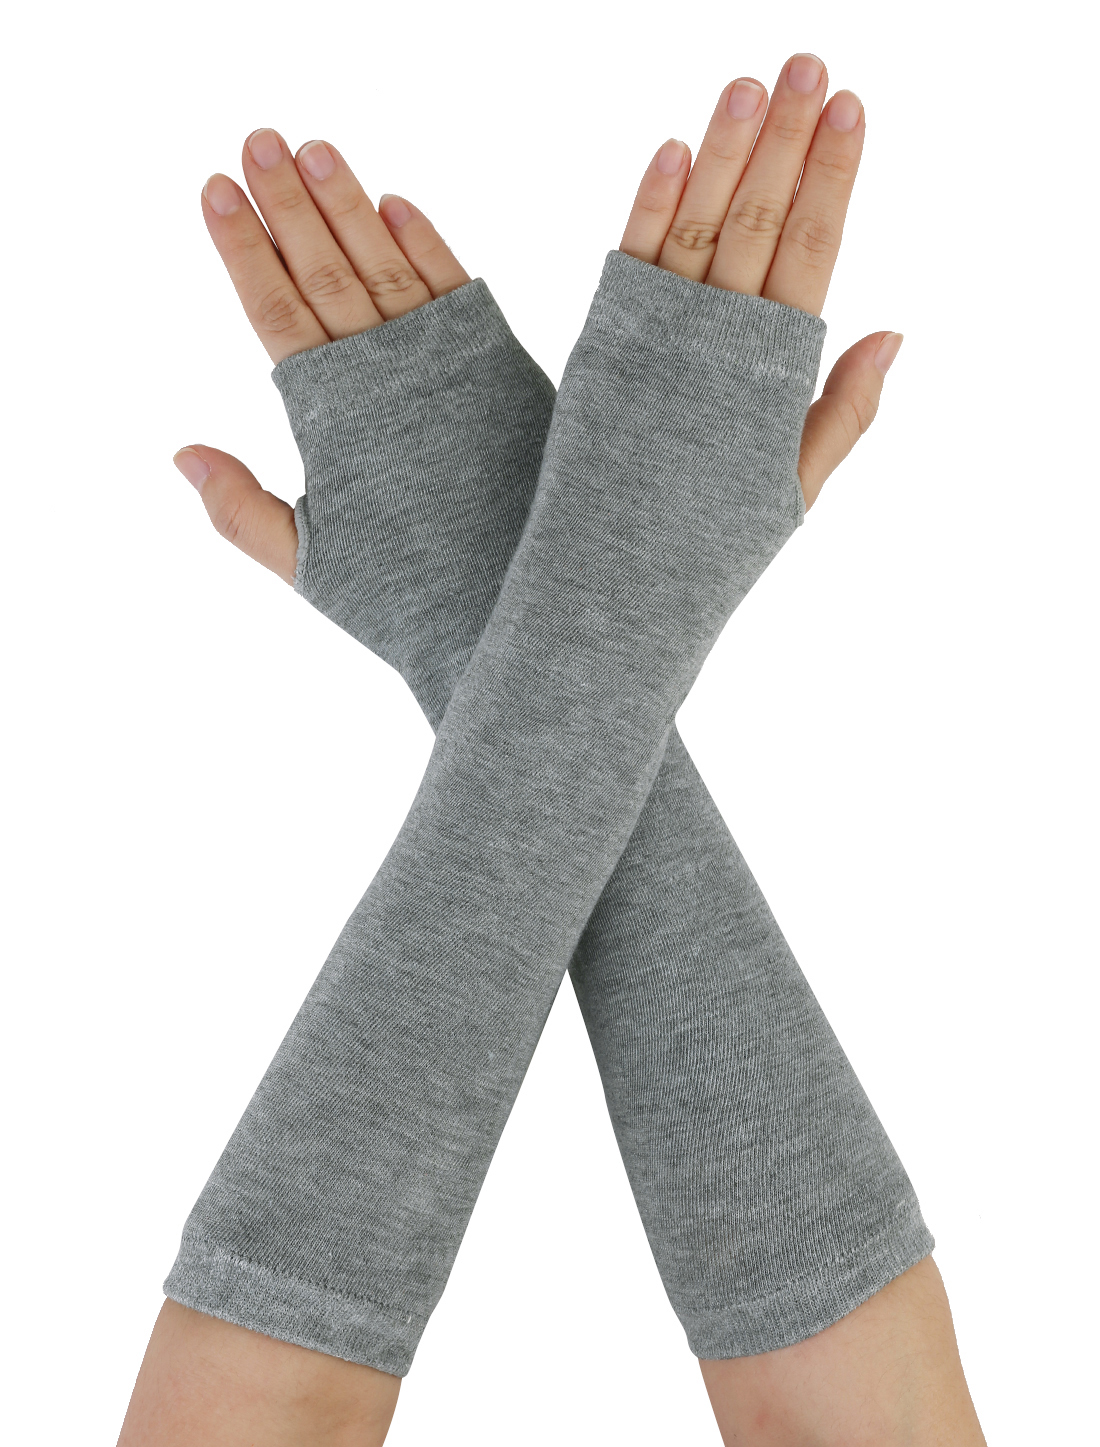 Light Gray Stretchy Fingerless Thumbhole Arm Warmer Gloves for Women